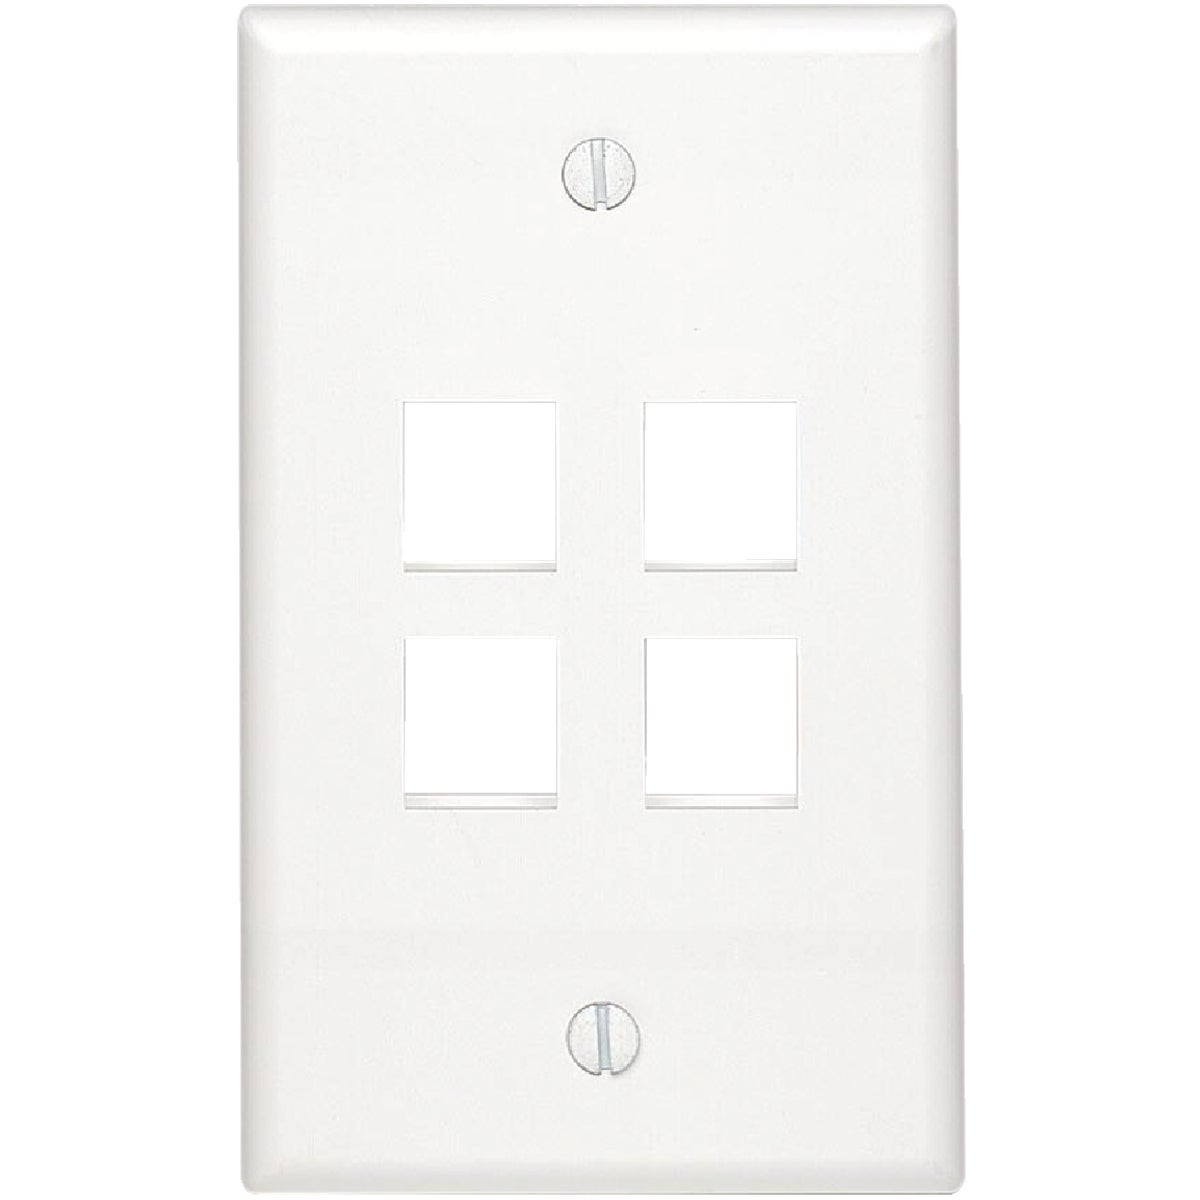 4-PORT WALL PLATE